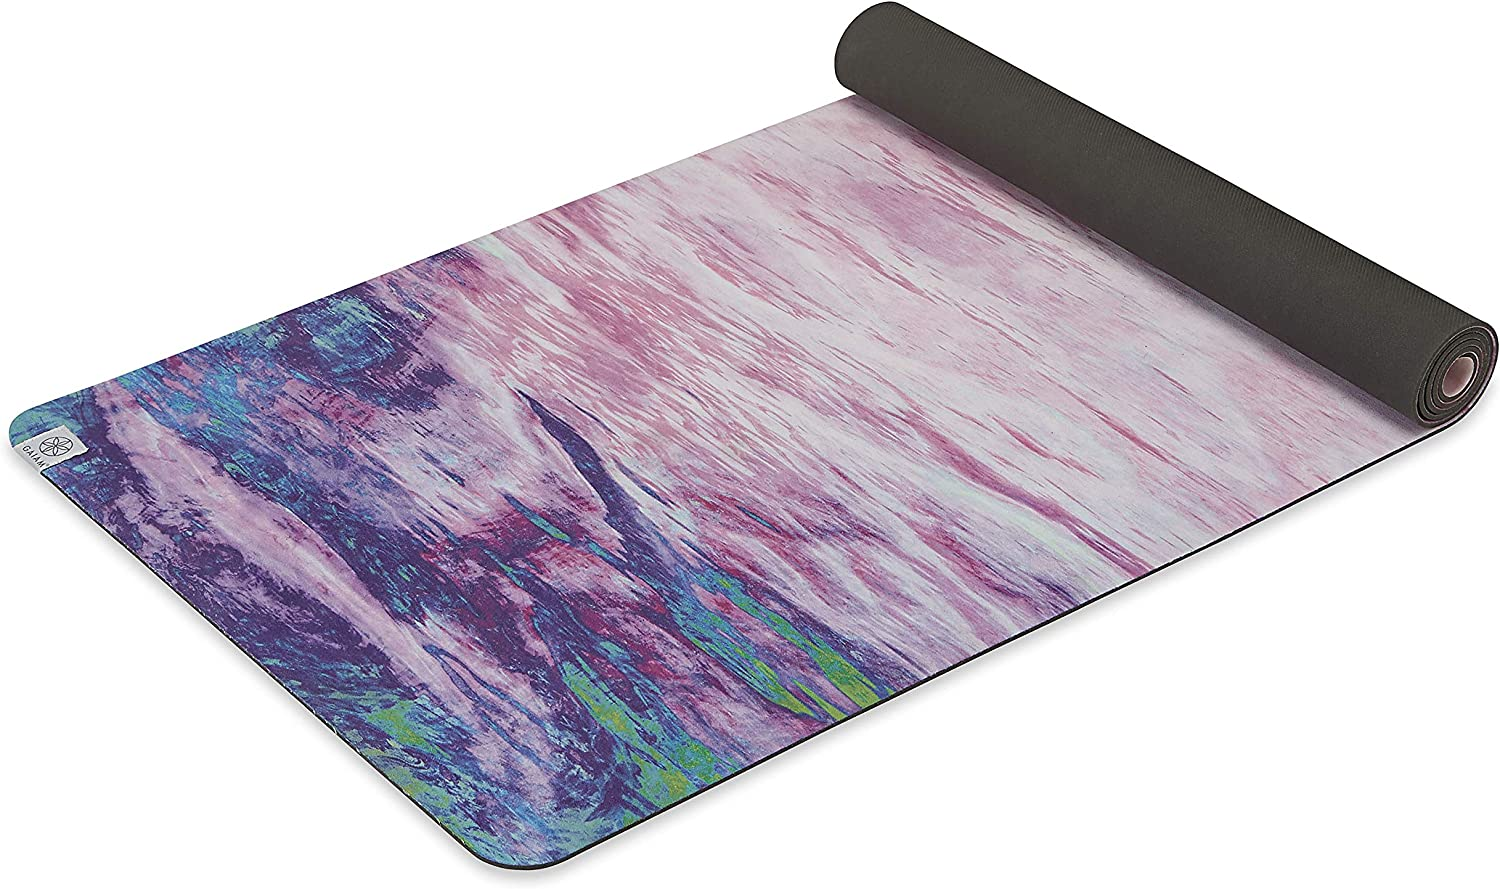 Gaiam Max 80% OFF Soft-Grip Yoga Mat - Microfiber Top Rubber Back Manufacturer OFFicial shop with Towel